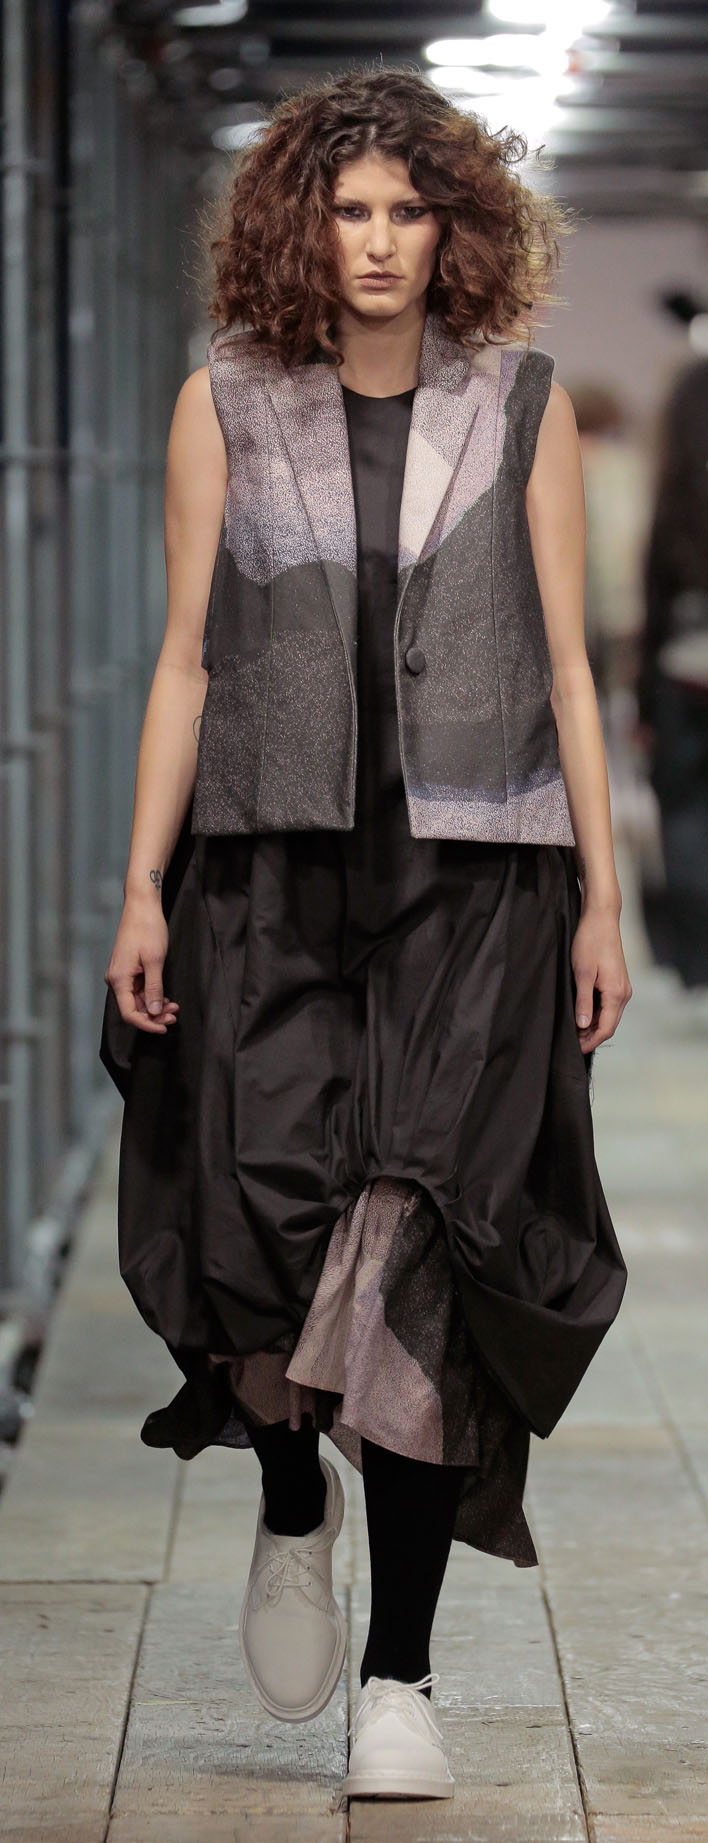 4_Digital Print and Design Collaborative Collection_Qiaochu_Li_photo_copyright_Randy_Brooke_CROPPED.jpg